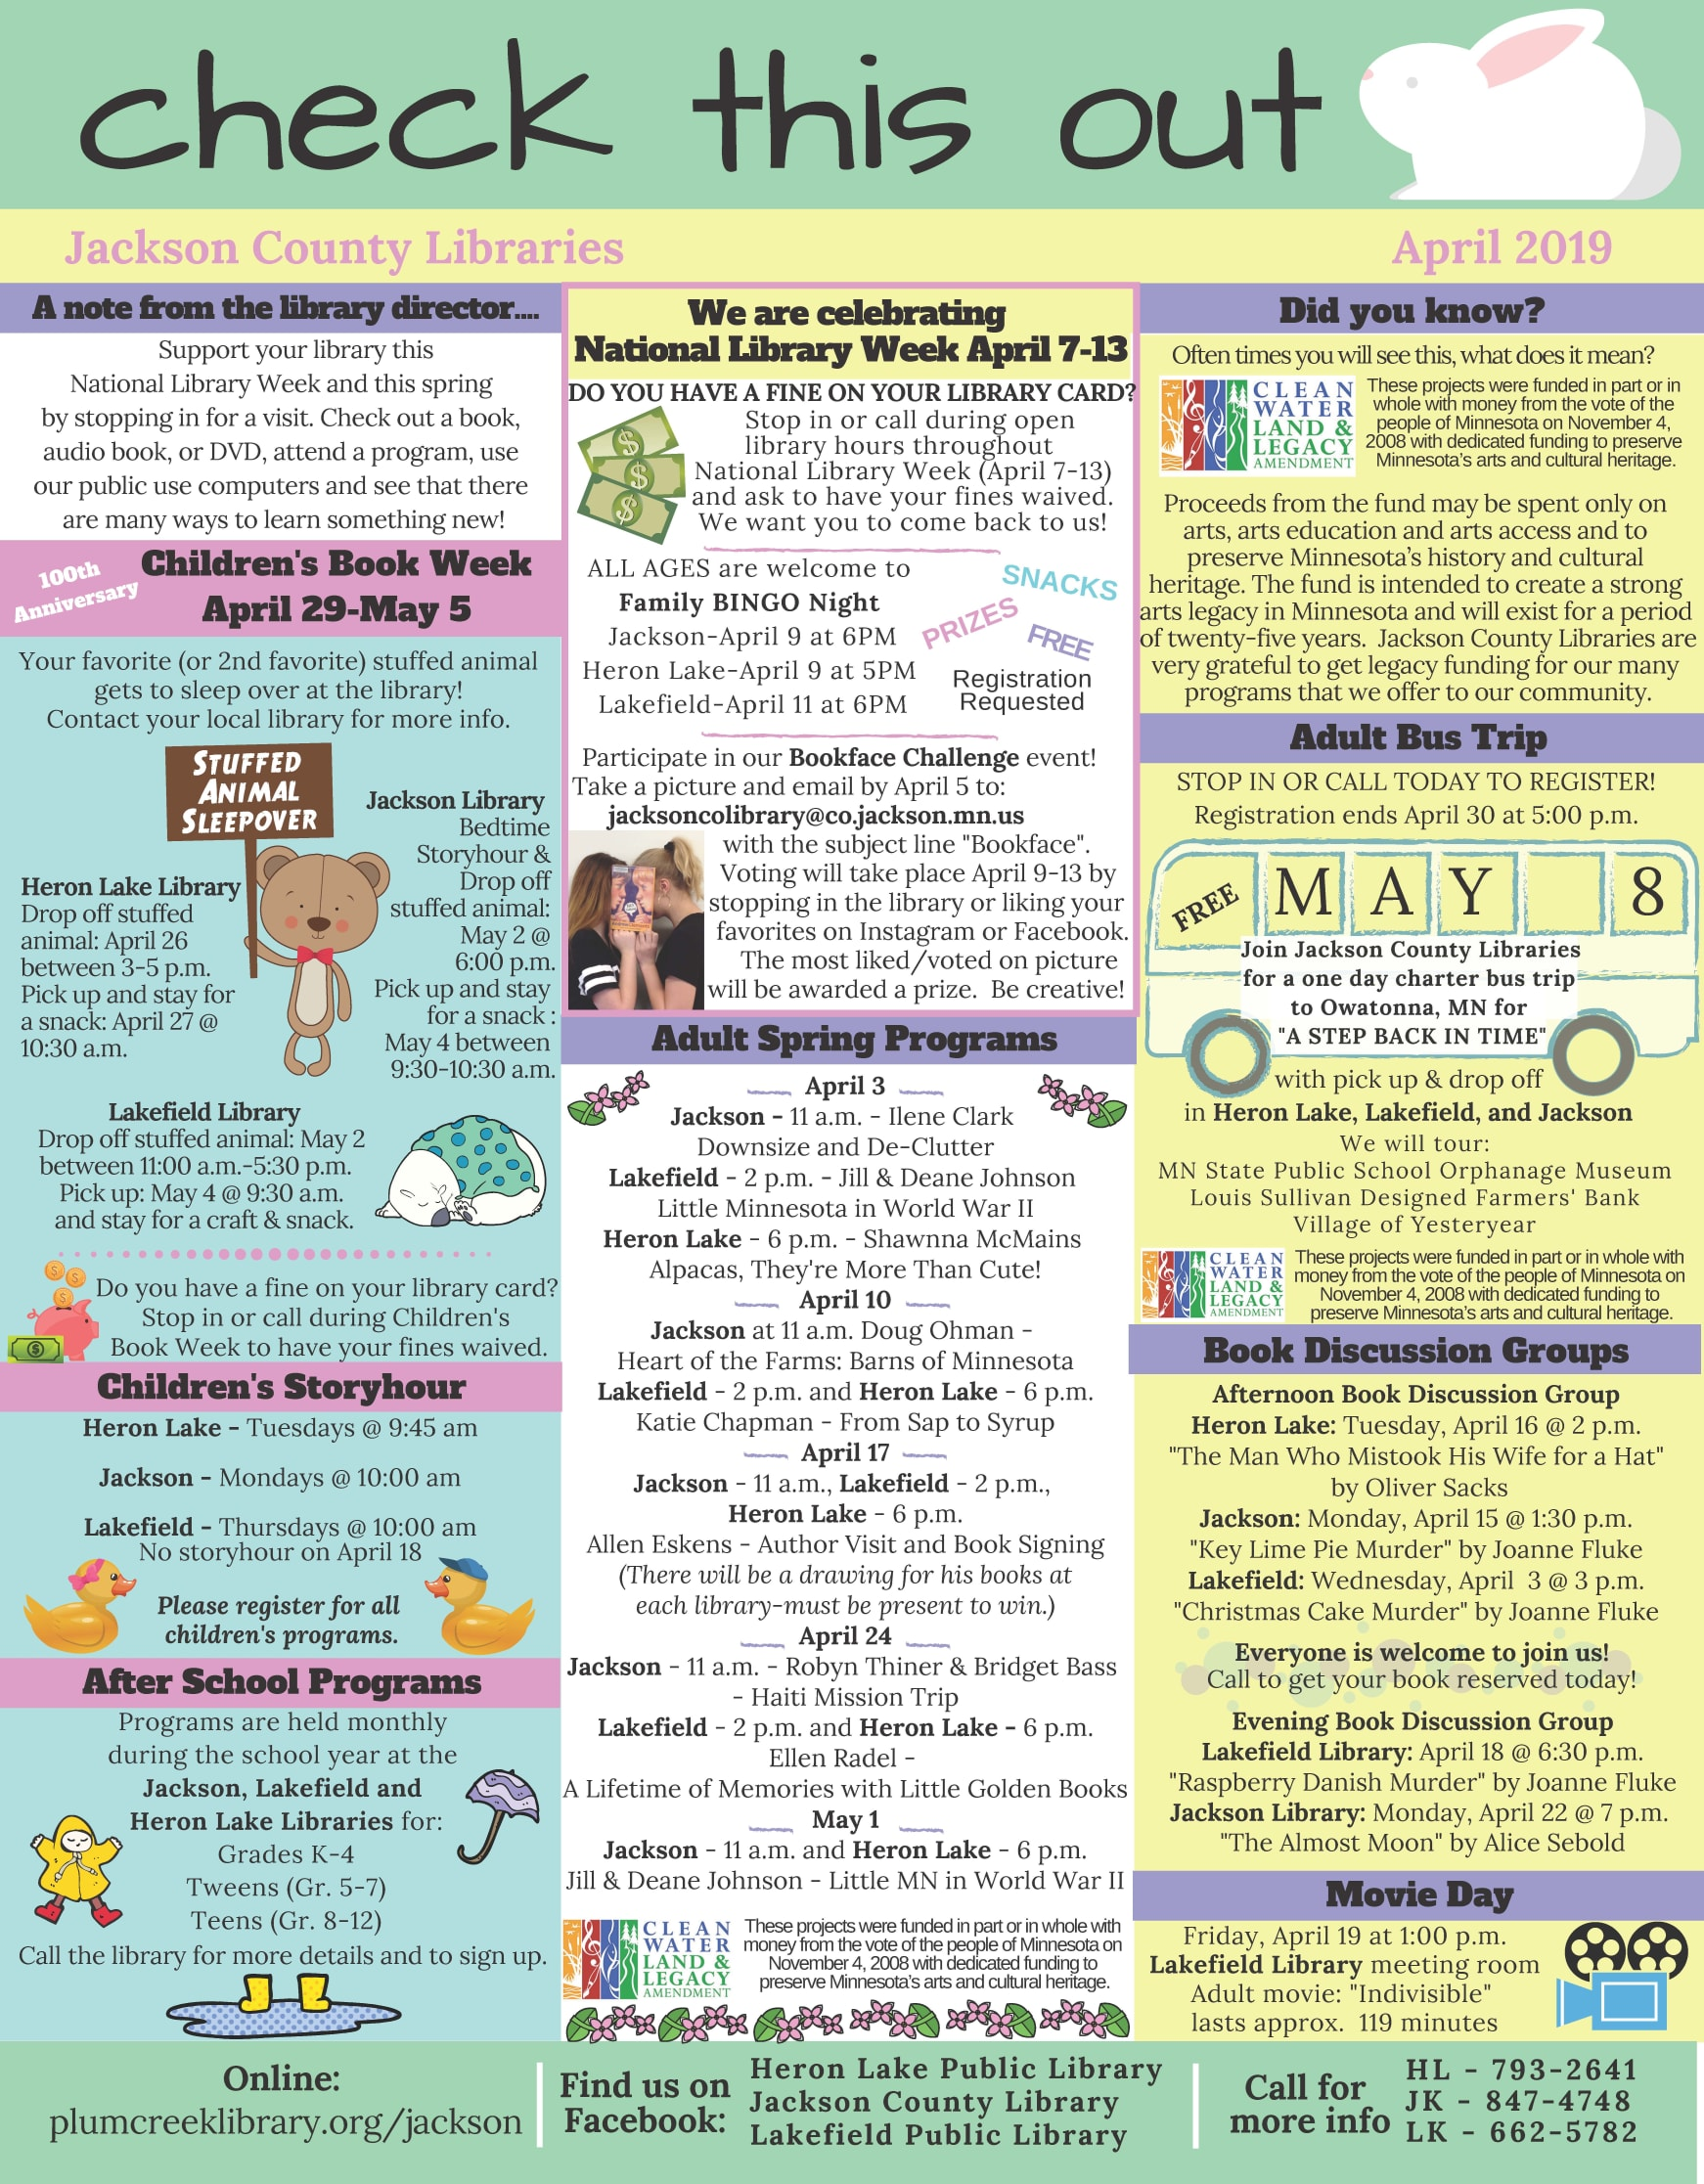 April-2019-check-this-out-newsletter-e-w1742.jpg